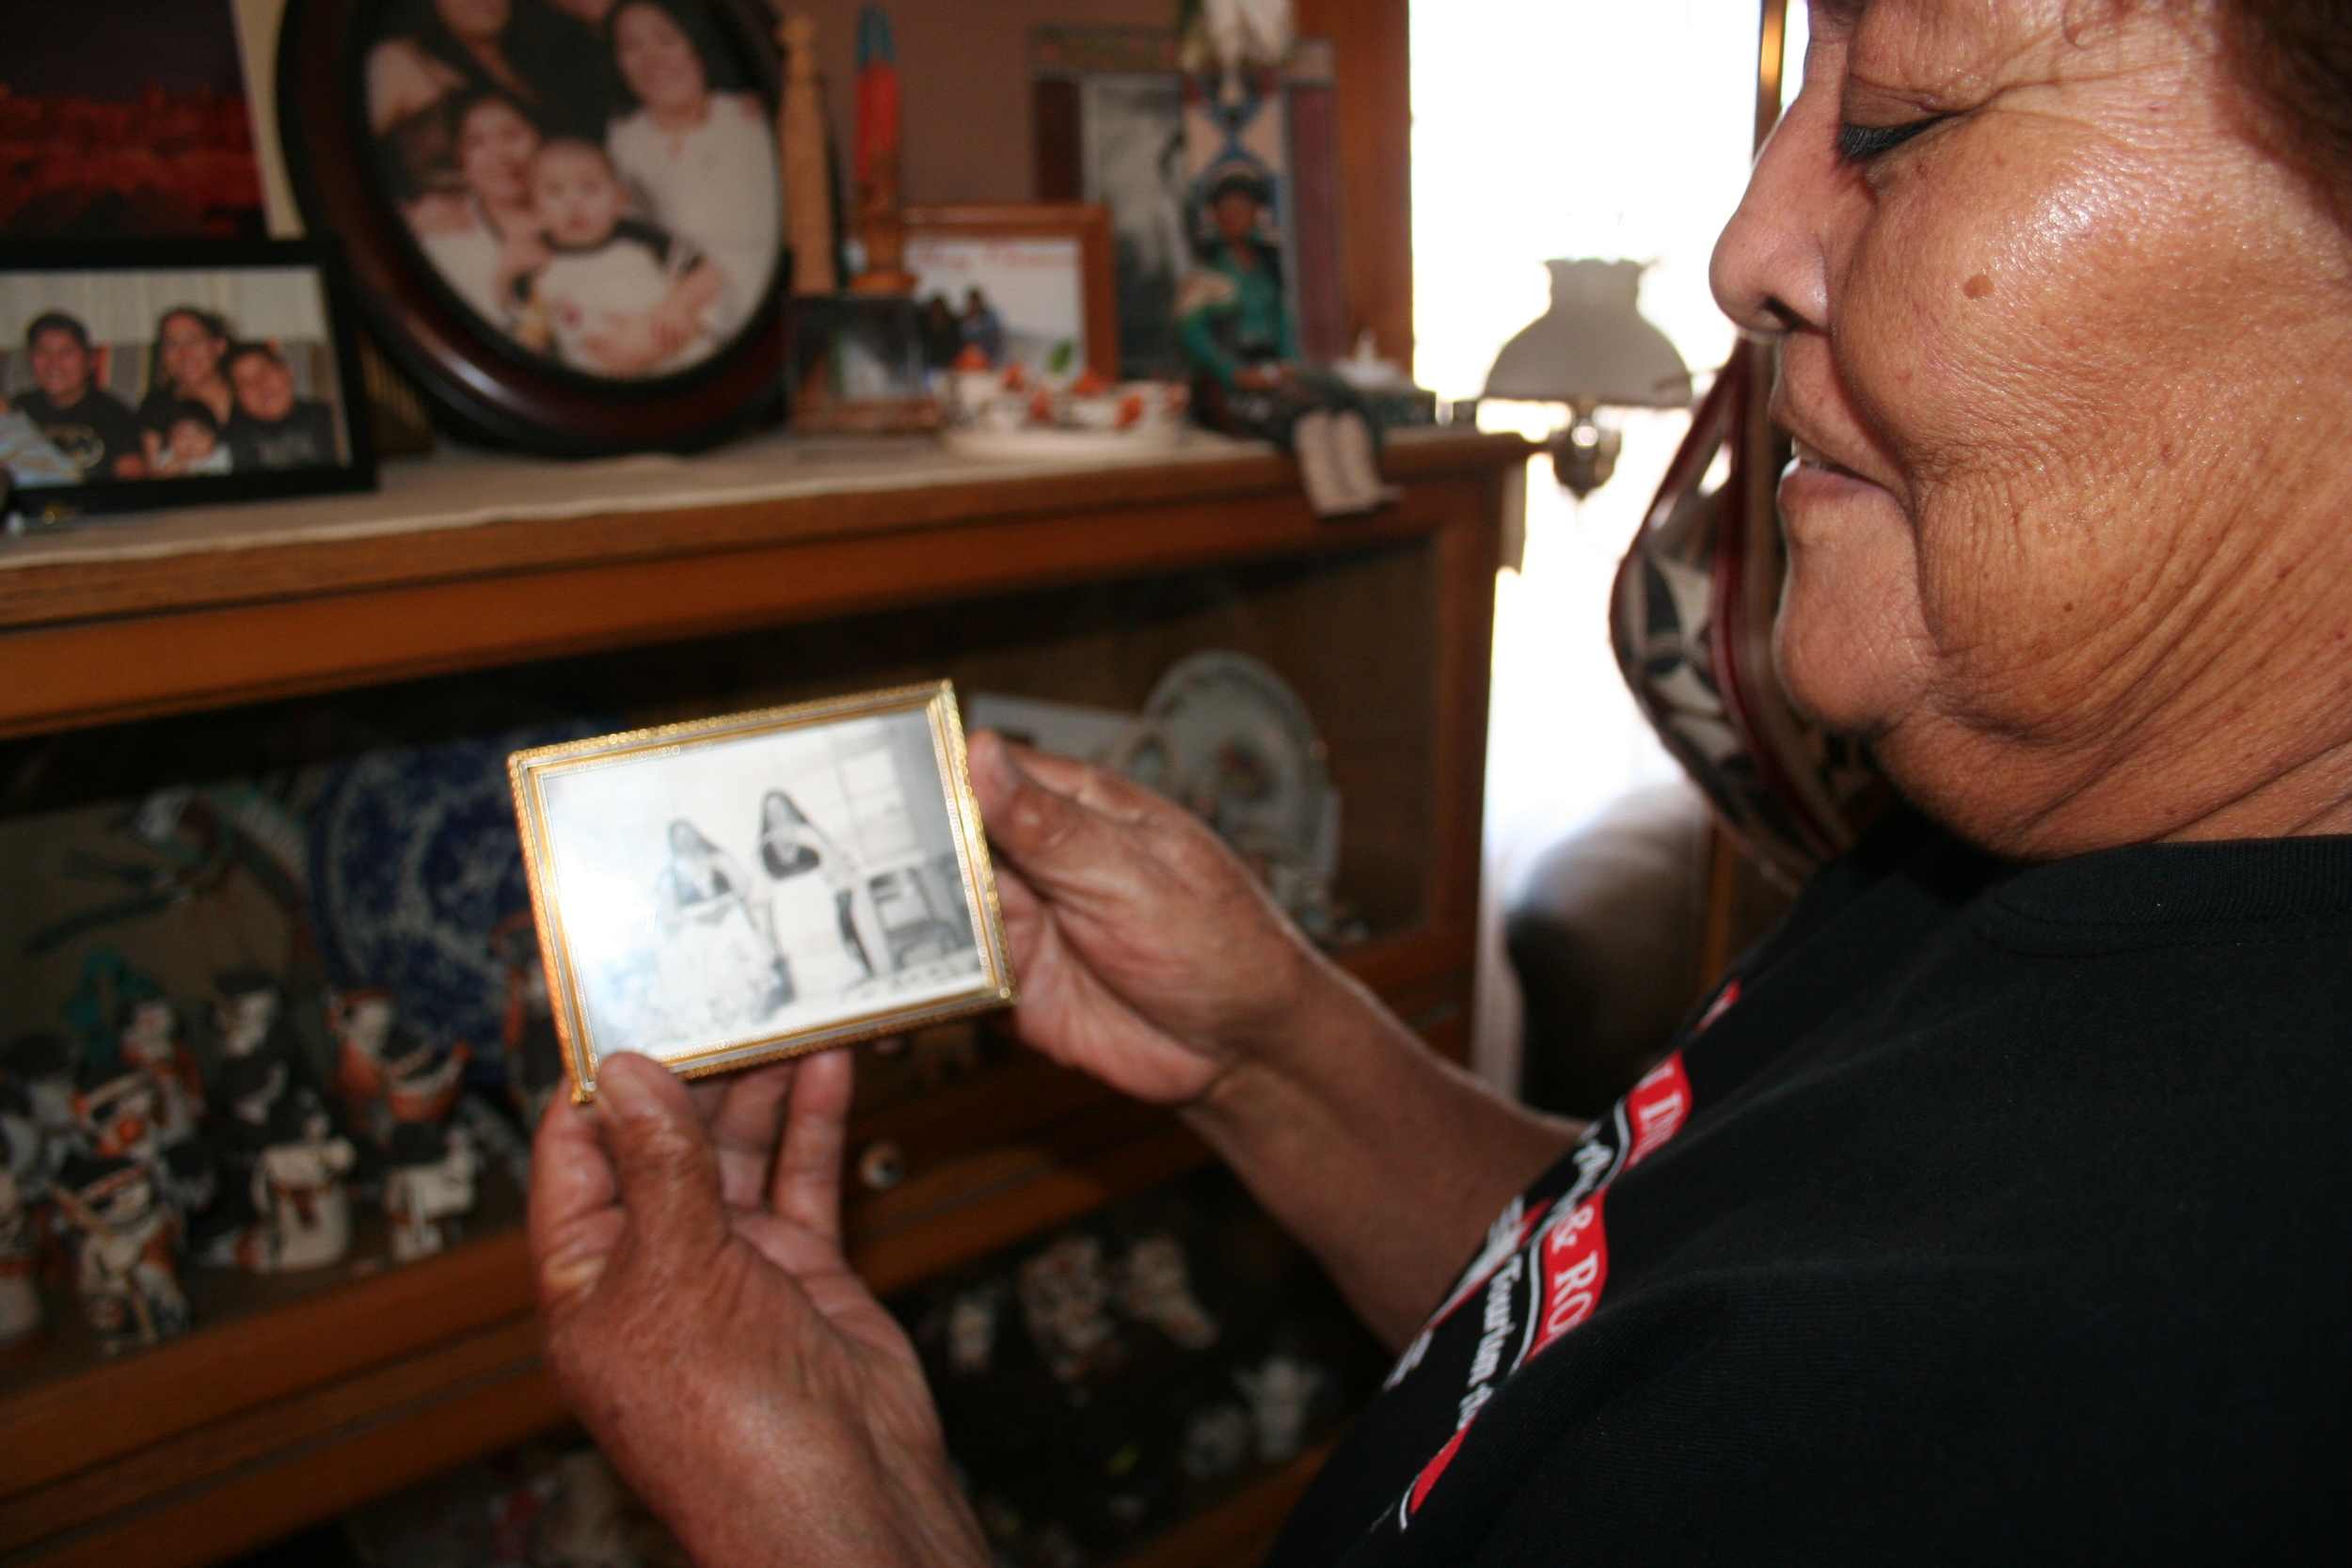 Acoma elder Mary Lowden holds a photo of her mother and her aunt, both pottery makers.